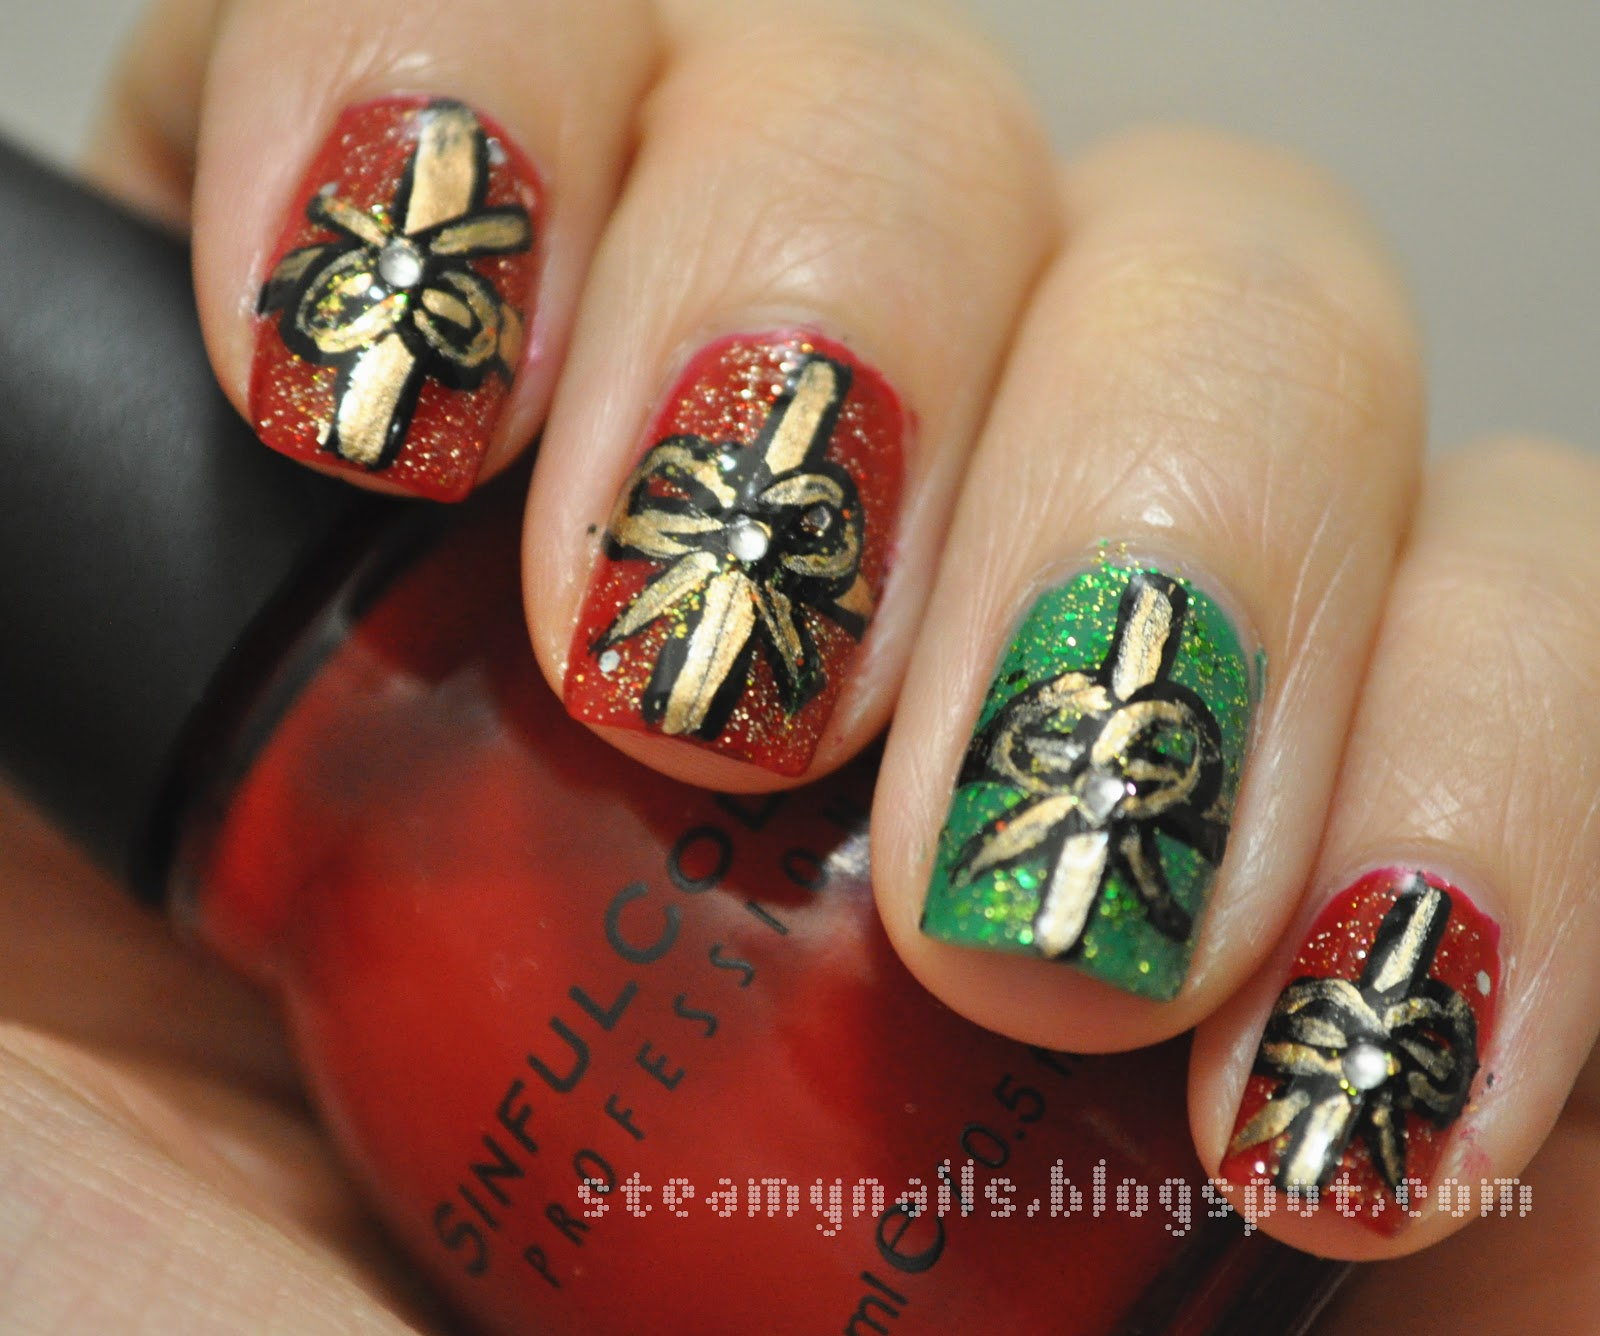 ♥ Steamy Nails ♥: Christmas Presents Nail Art: Inspired by ...